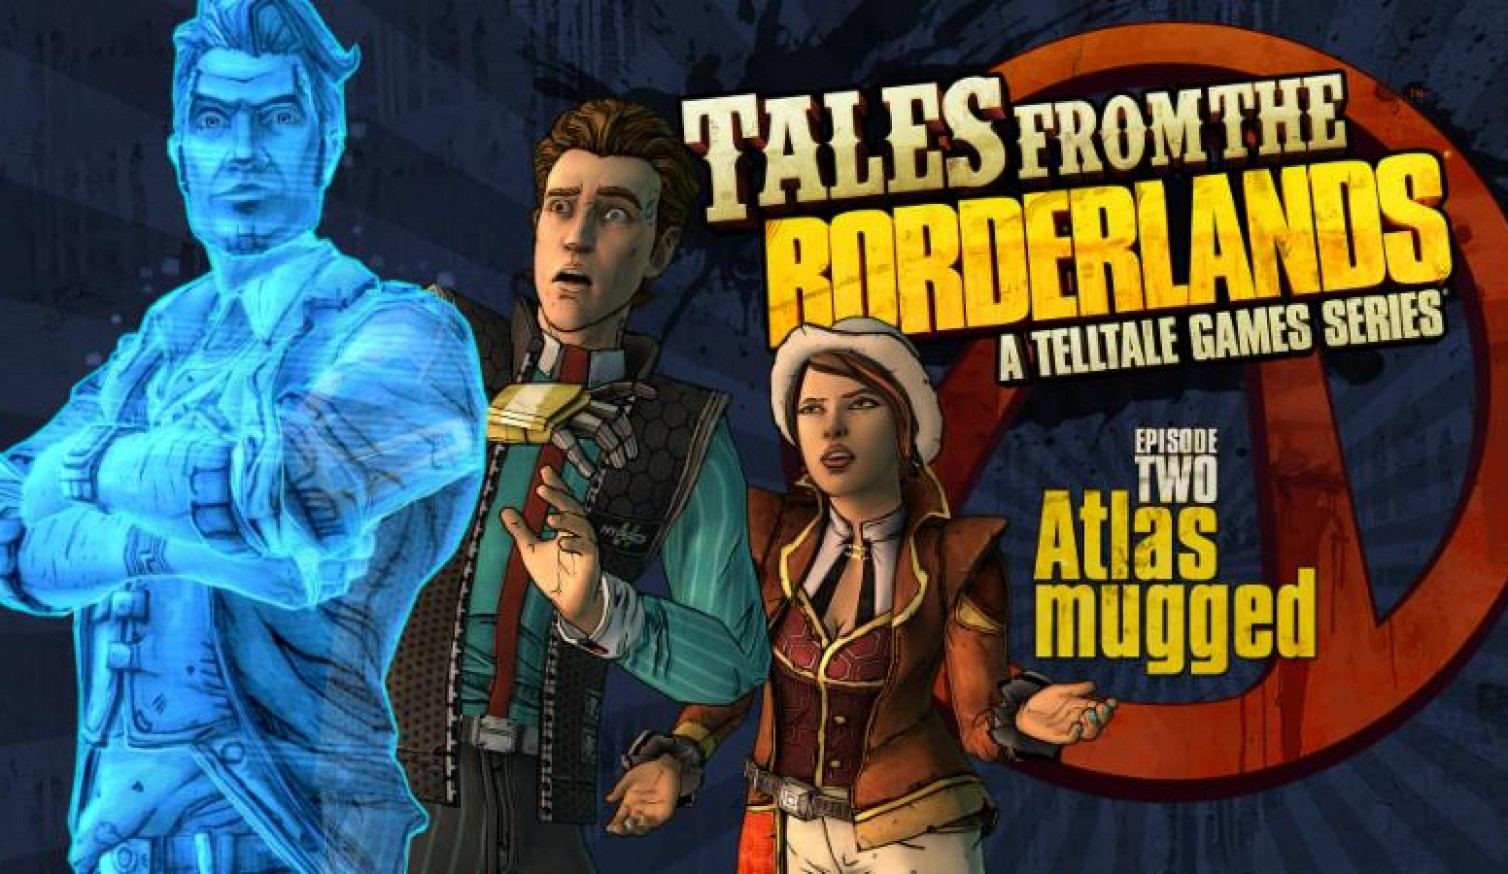 Tales from the Borderlands Episode 2.